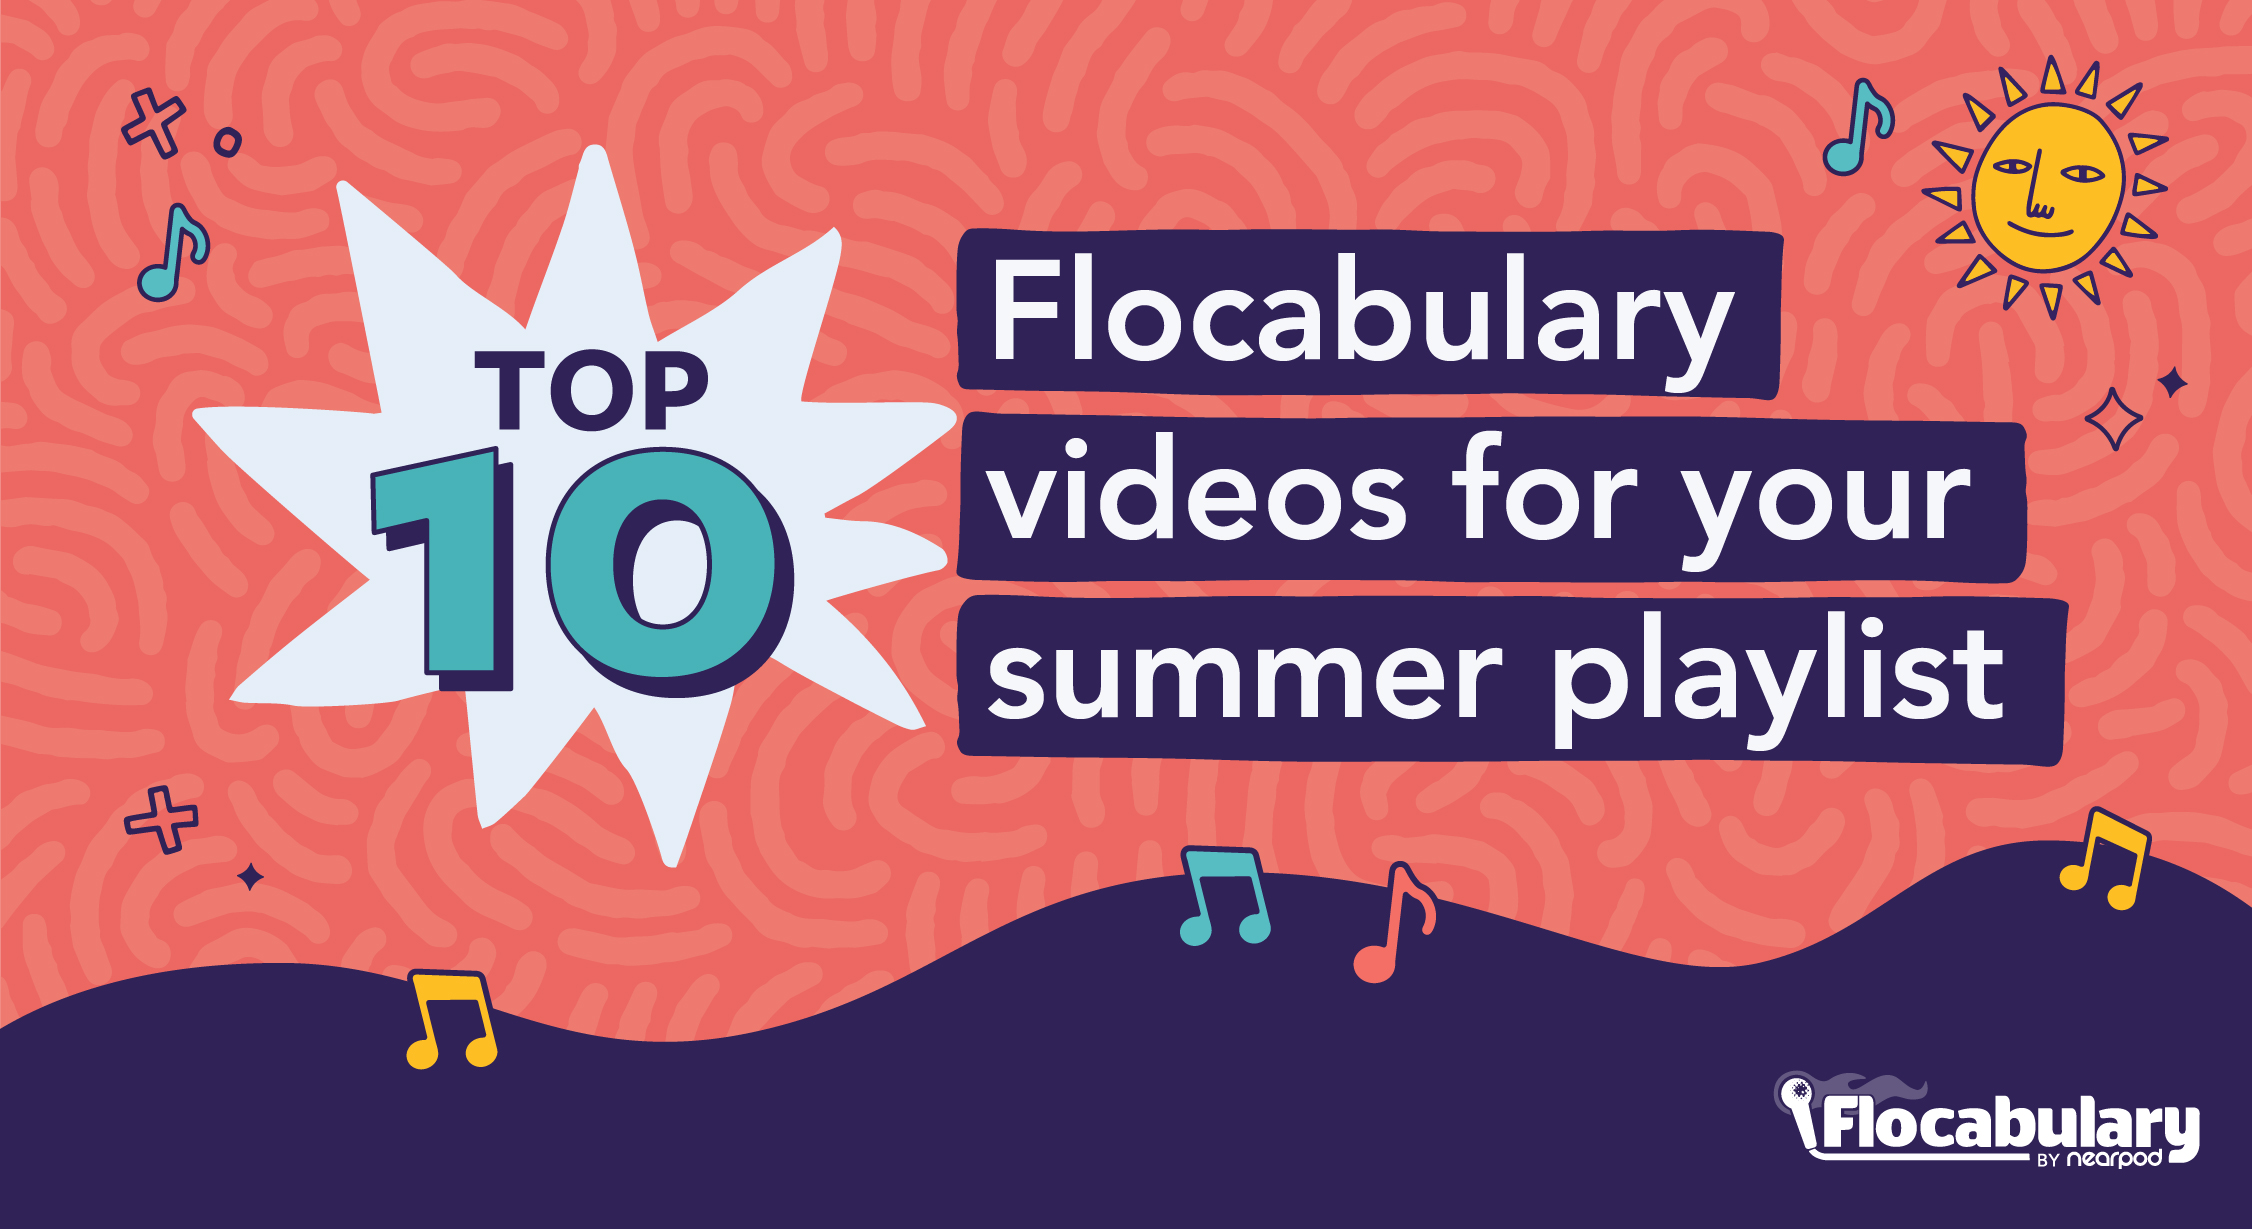 Top 10 Flocabulary Videos For Your Summer Playlist